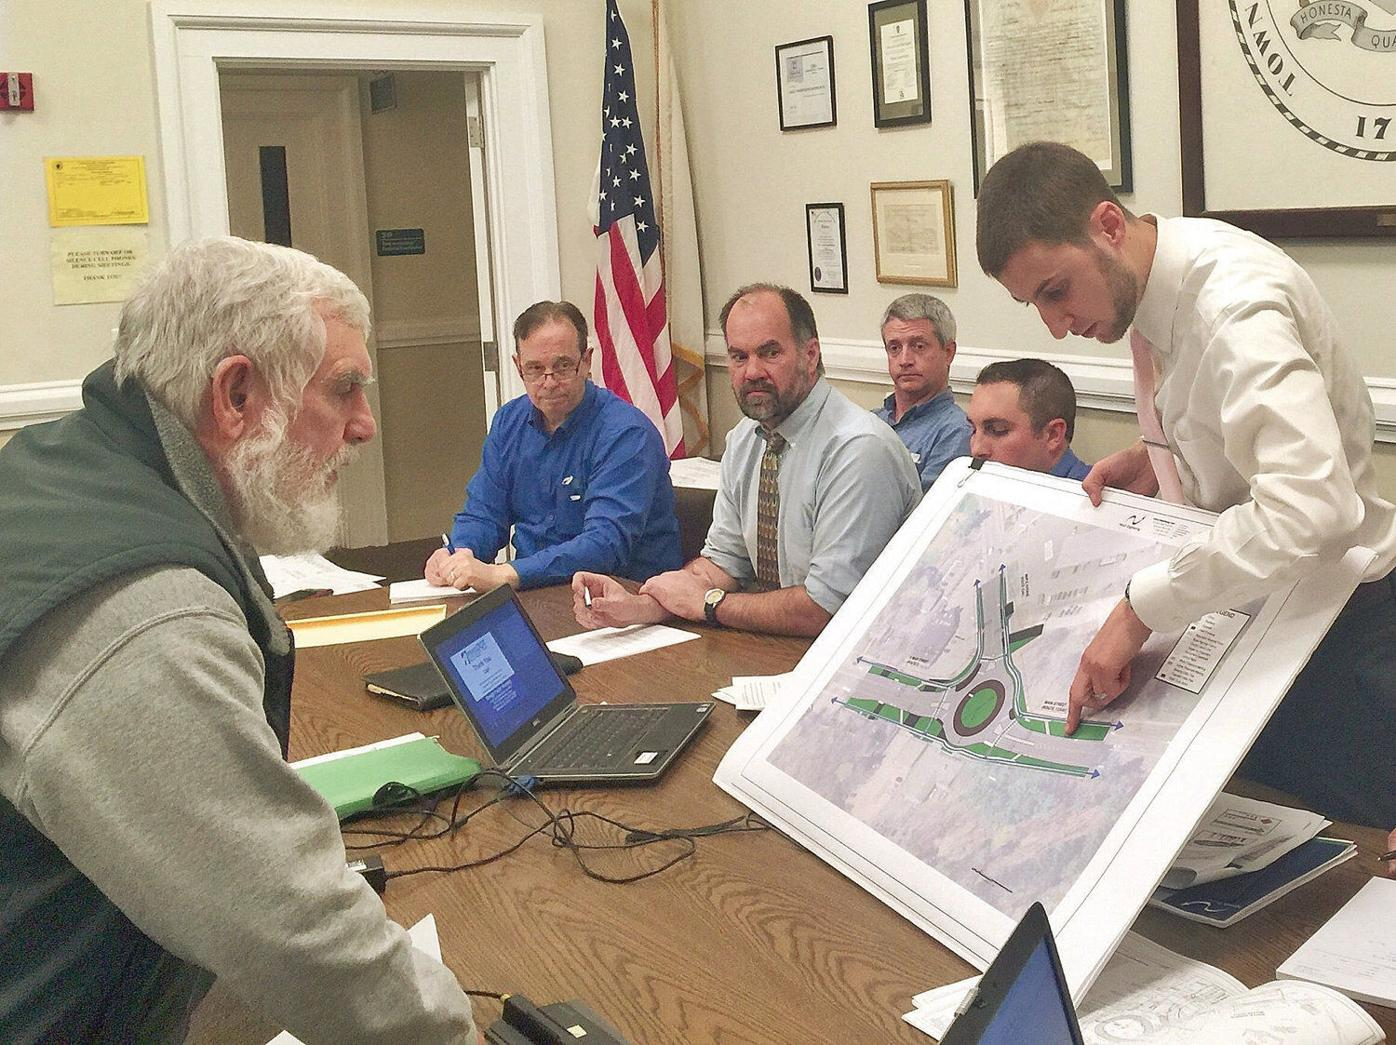 Opposition fierce to Great Barrington roundabout project